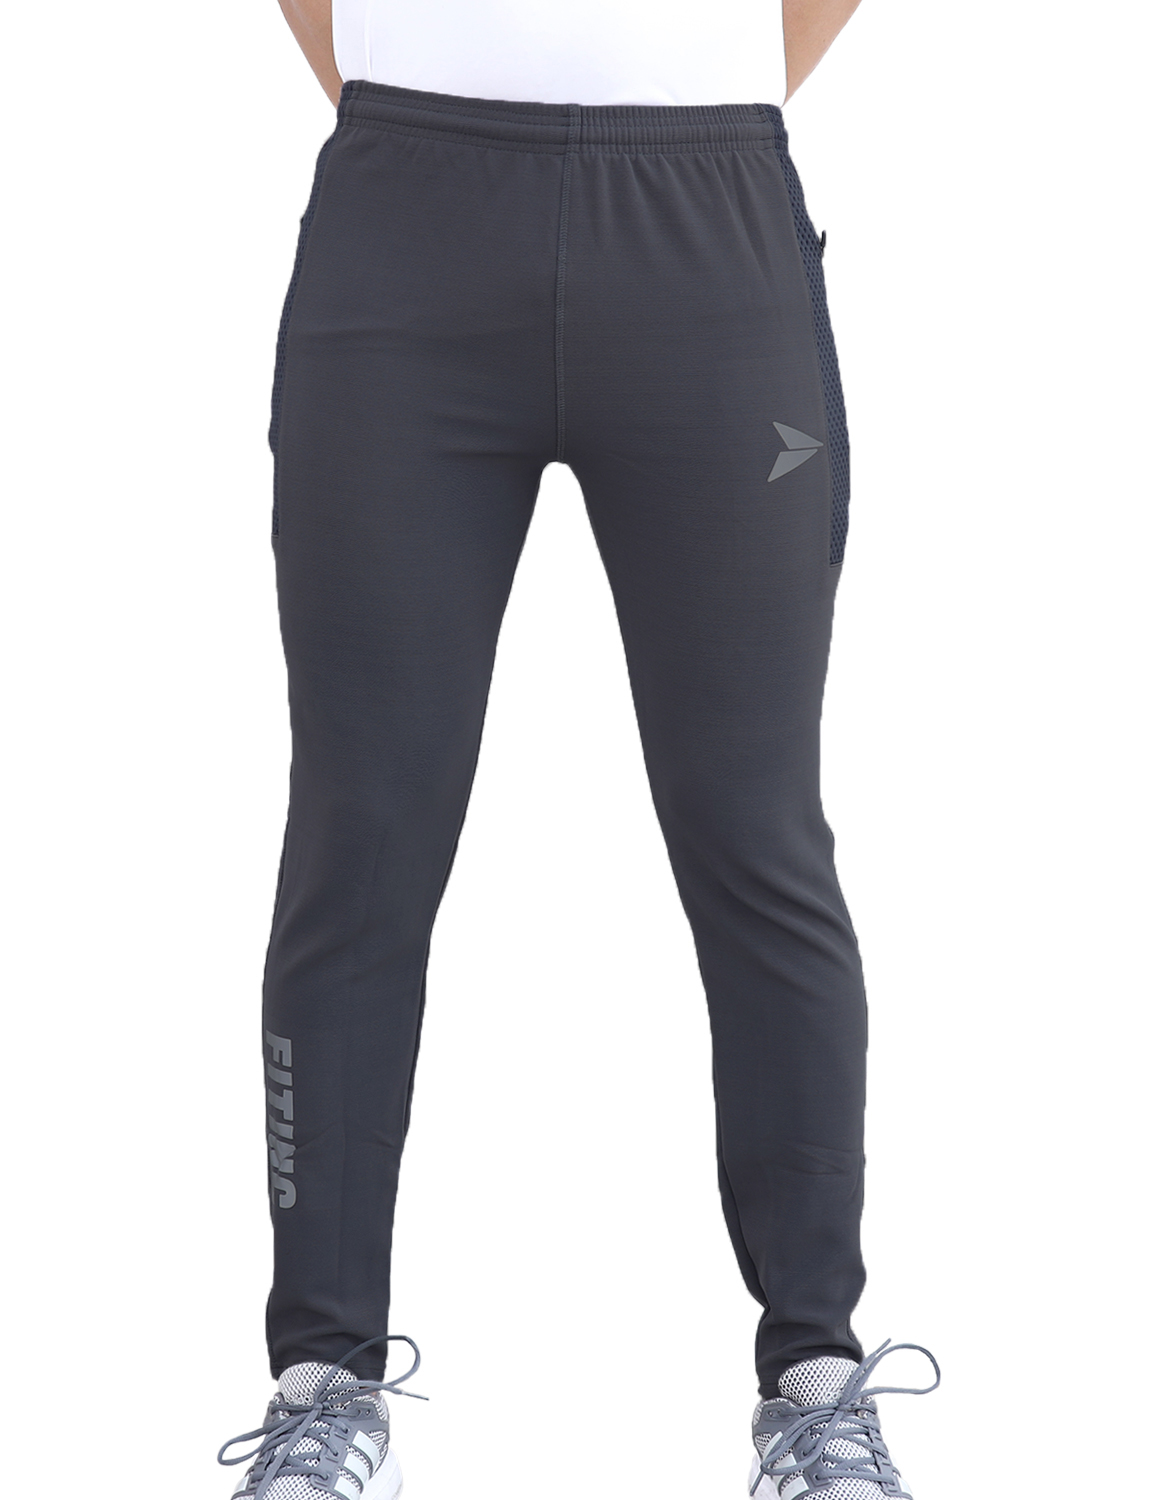 Fitinc   Fitinc Dobby Grey Track Pant for Men with Zipper Pockets